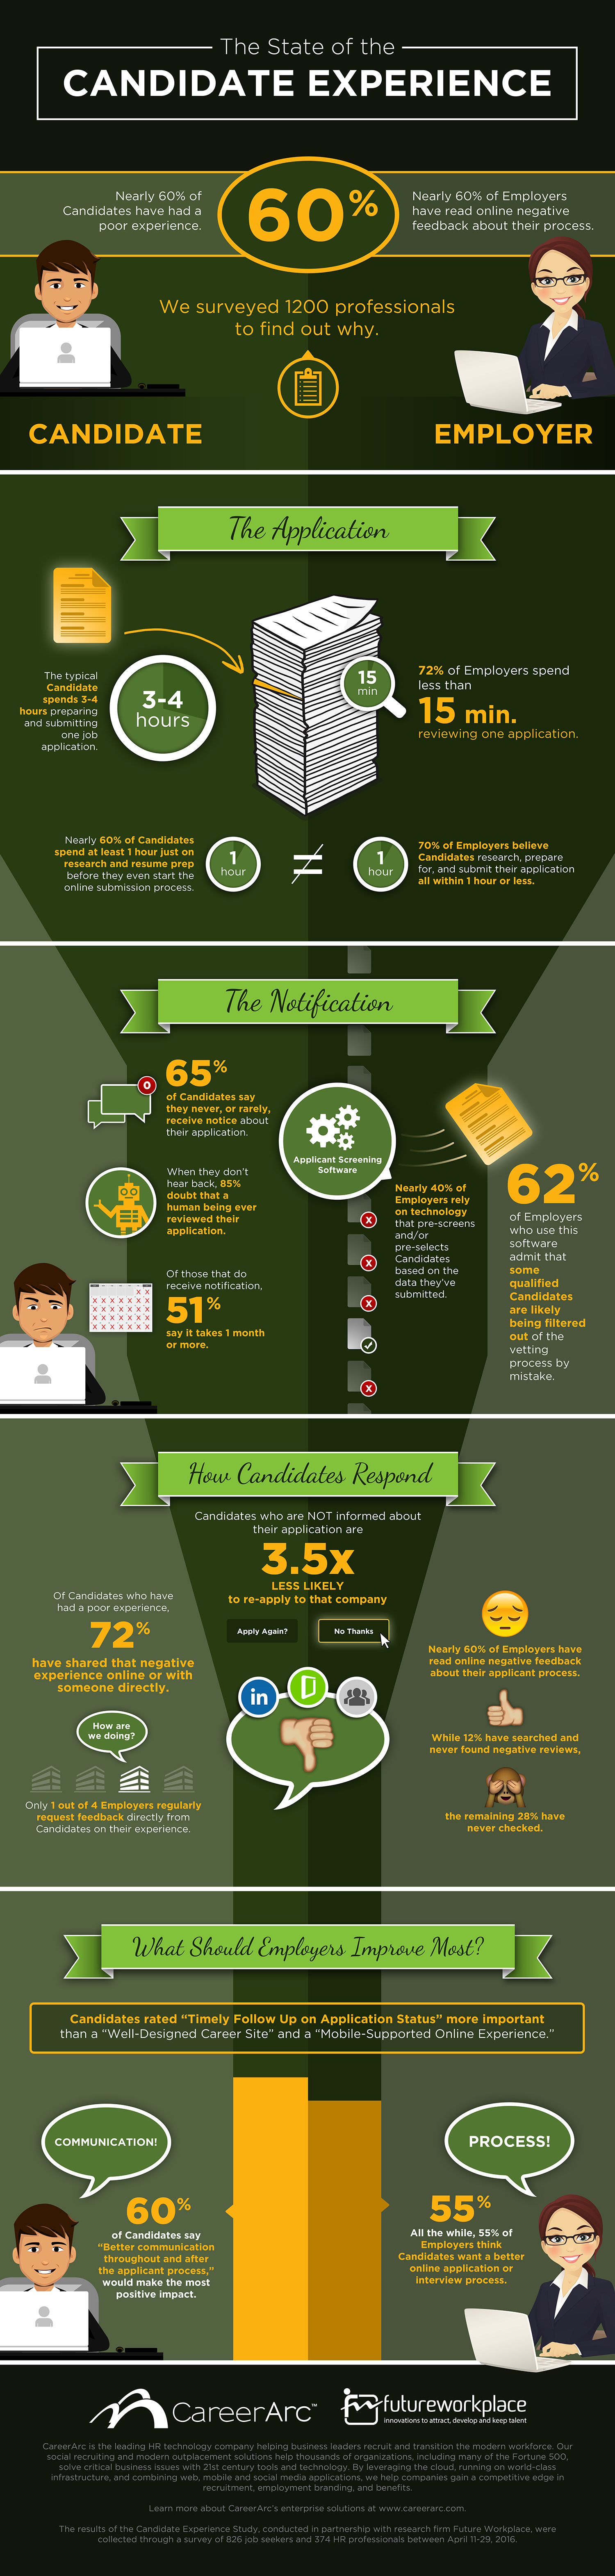 Candidate Experience Study Infographic CareerArc